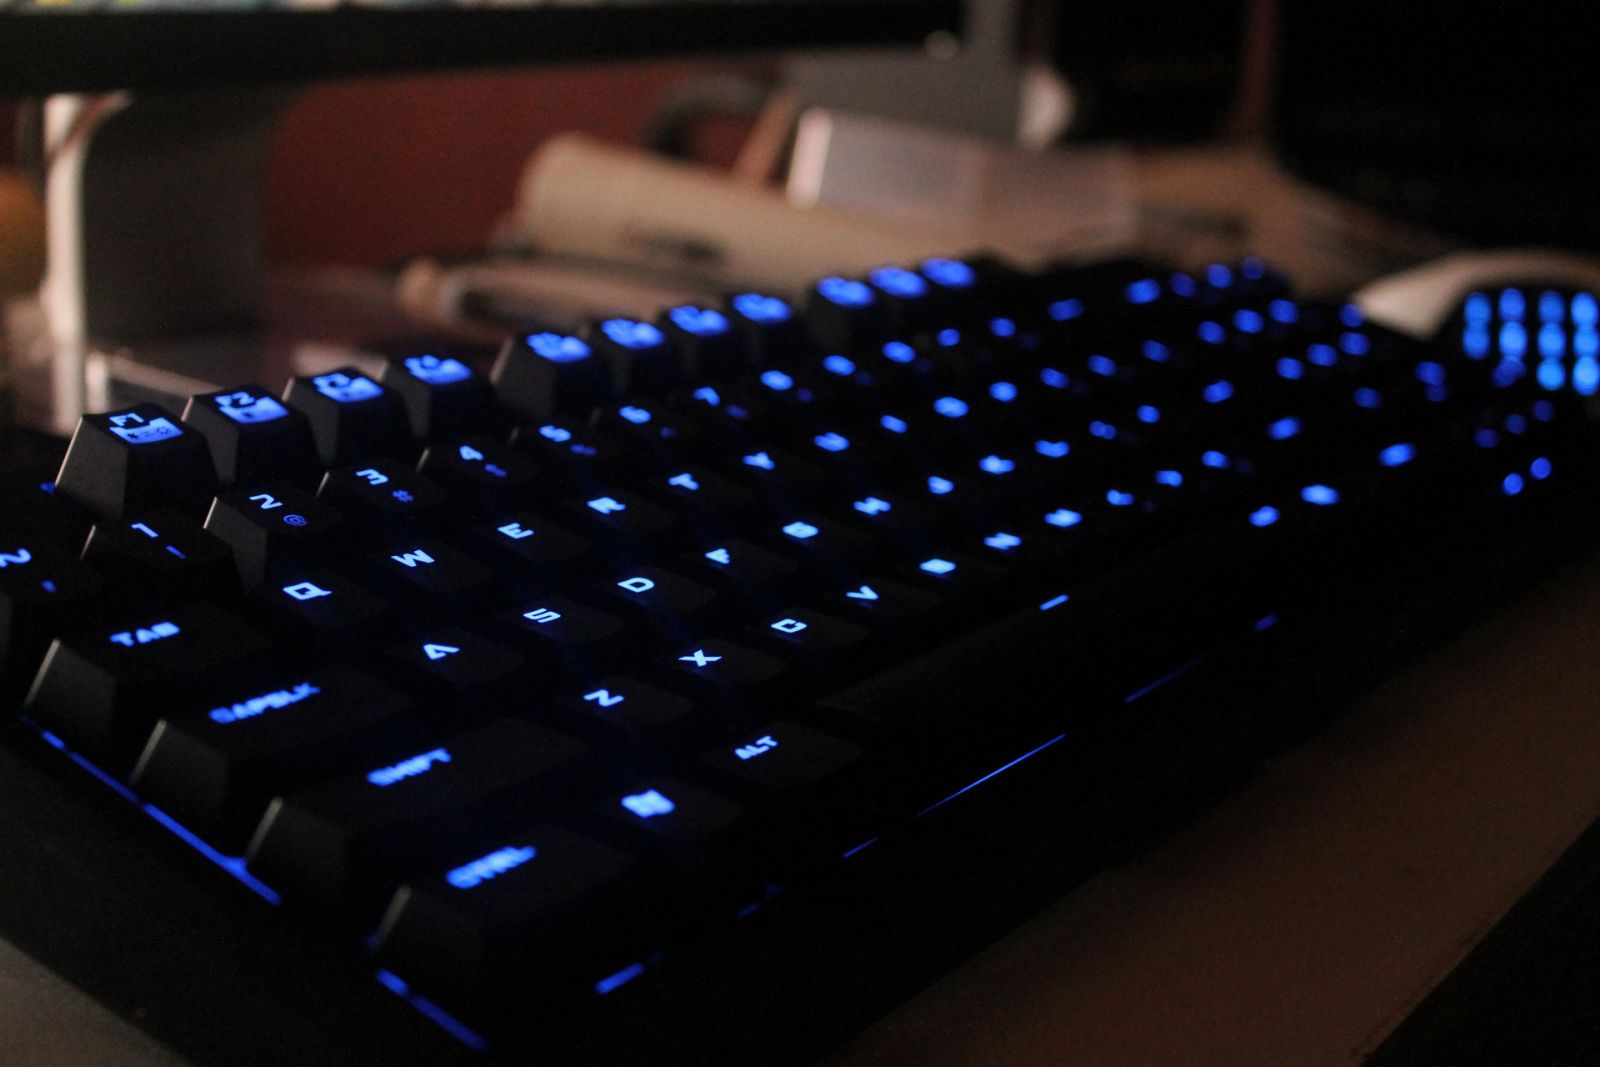 Famed Cm Storm Quickfire Tk Blue Cm Storm Quickfire Tk Blue Rigs Linus Tech Tips Cm Storm Quickfire Tk Red Cm Storm Quickfire Tk Turn On Backlight dpreview Cm Storm Quickfire Tk